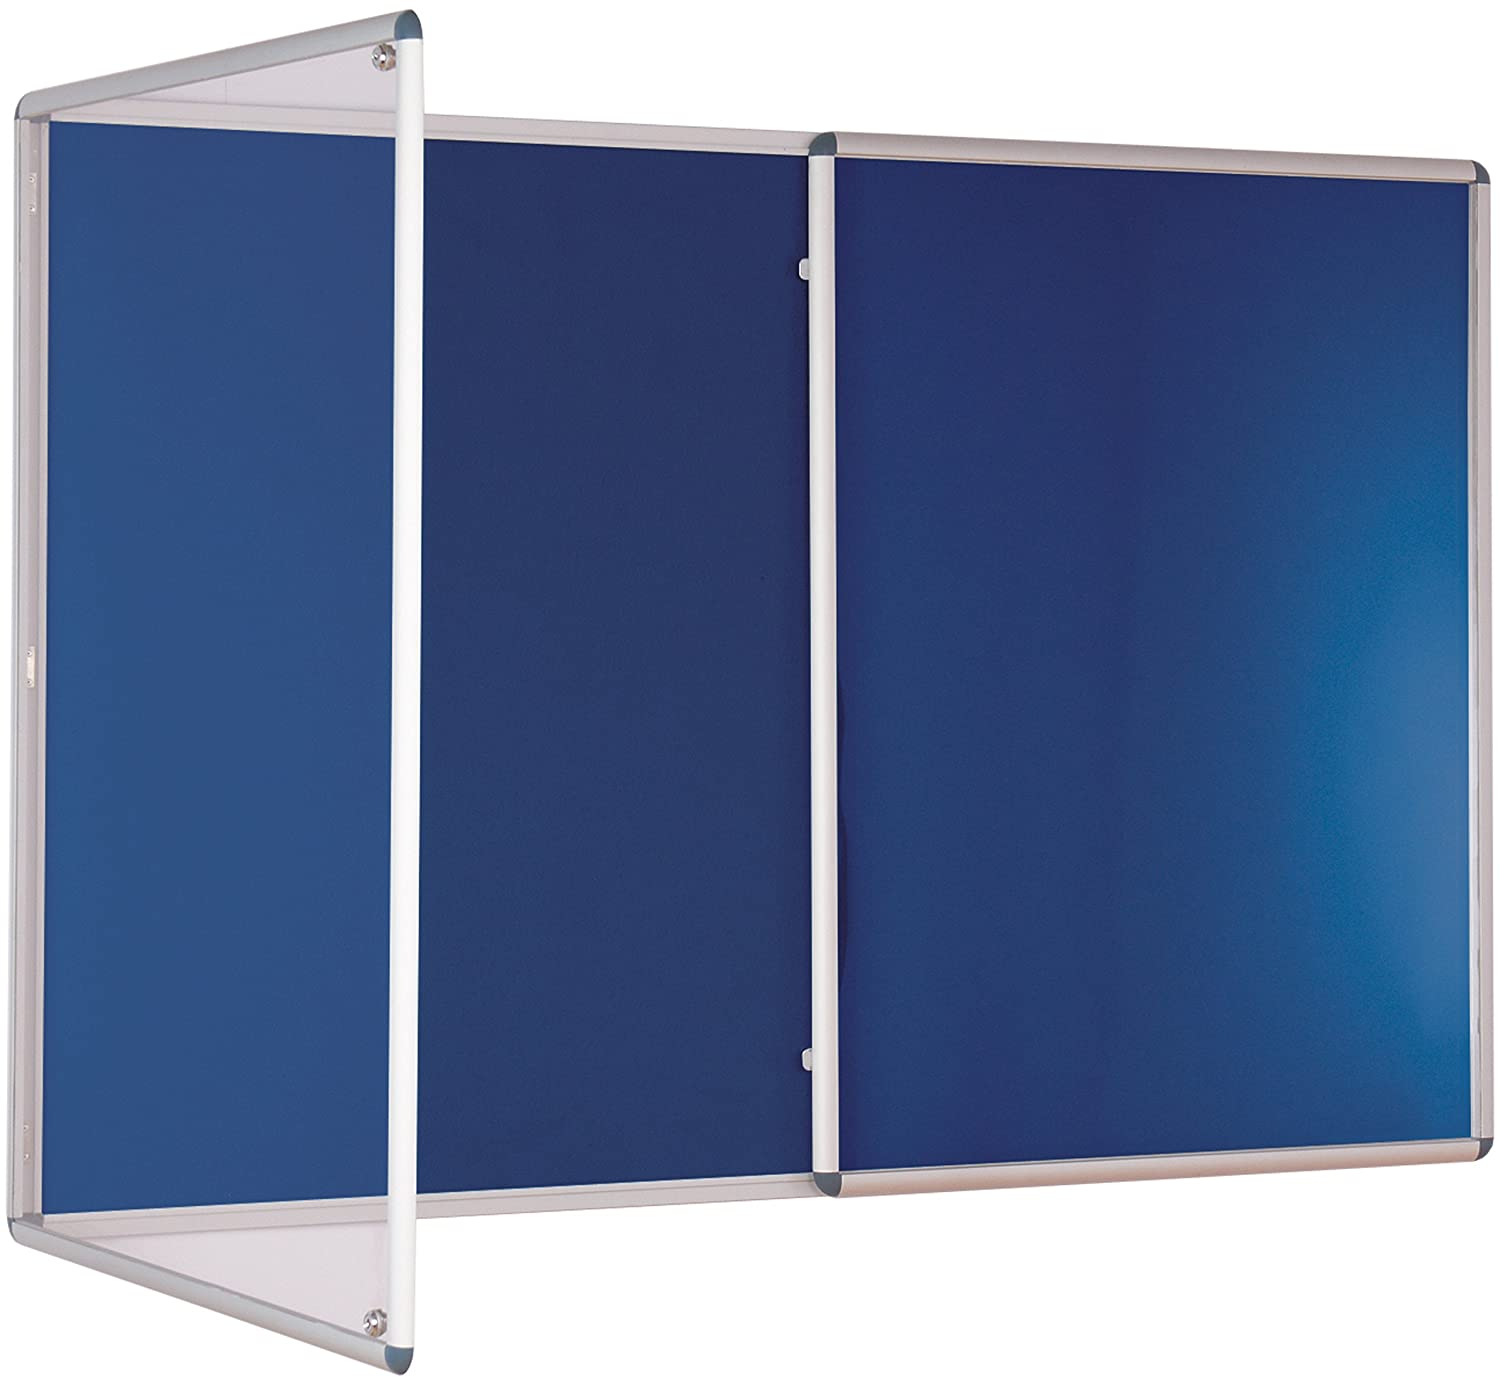 1200mm x 1800mm Metroplan Tamperproof noticeboard Blue